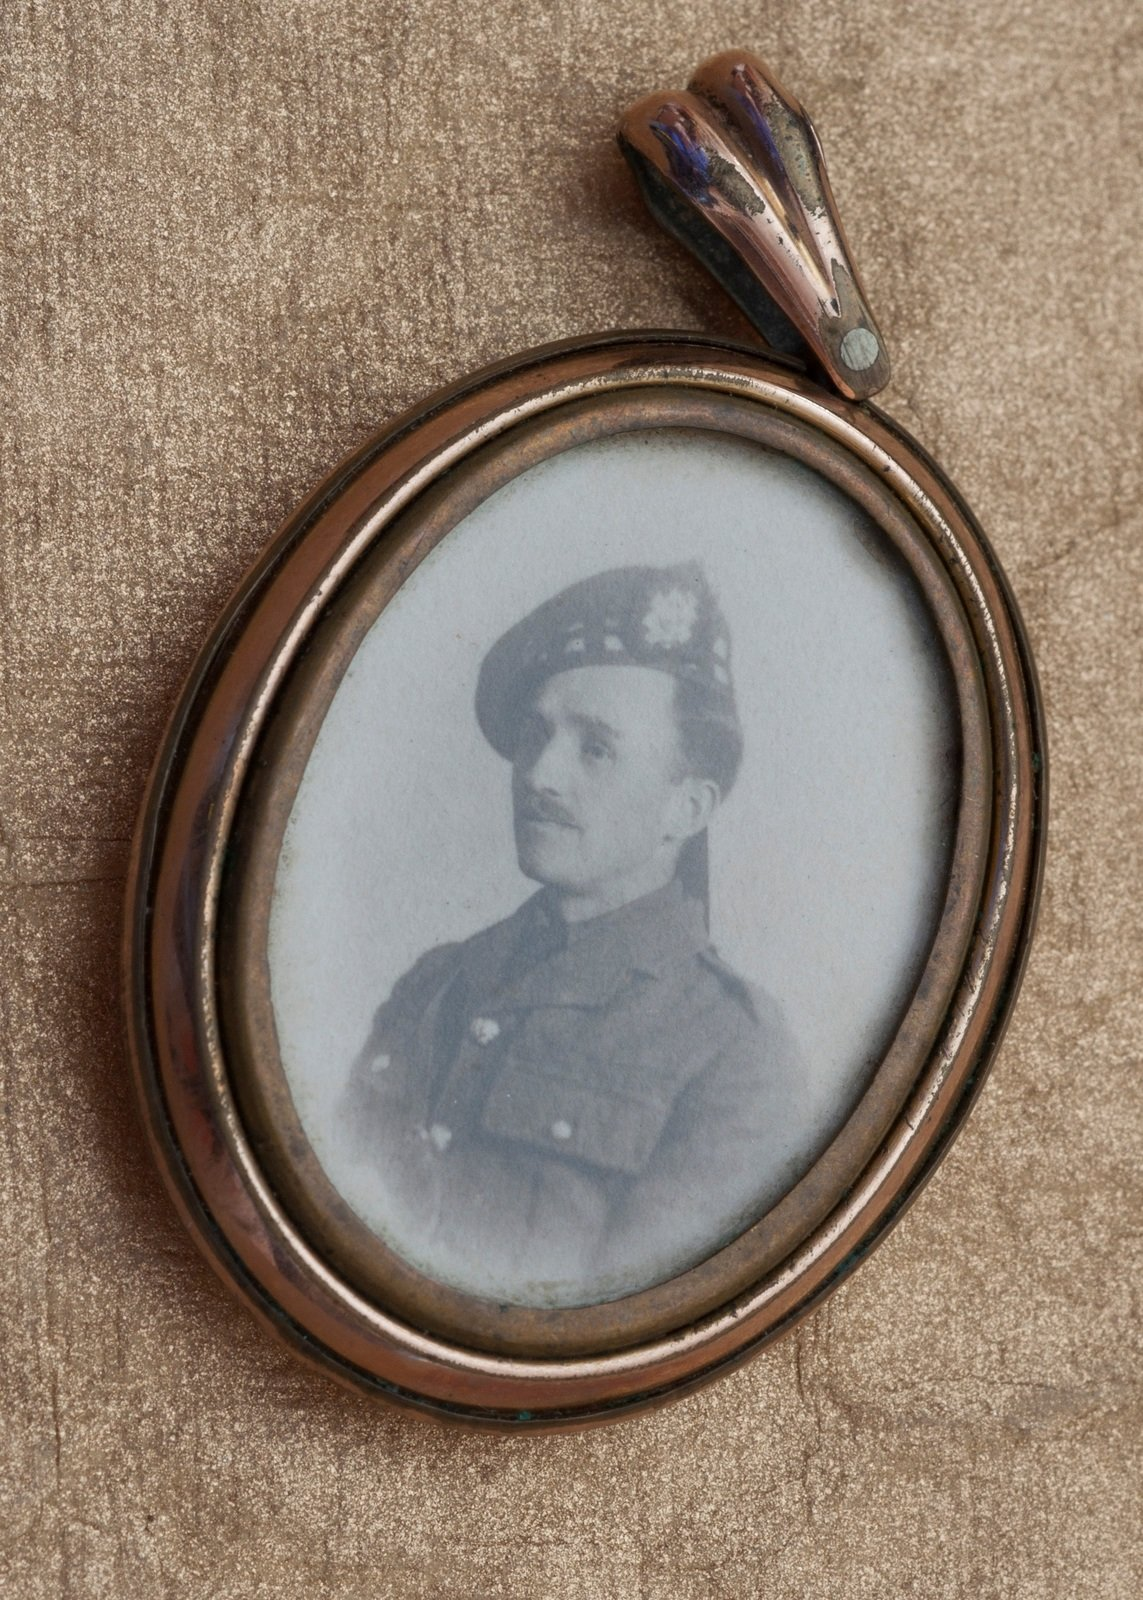 Locket containing George Cavan's photo, Jean Cavan, Europeana 1914-1918 / Maureen Rogers, CC BY-SA